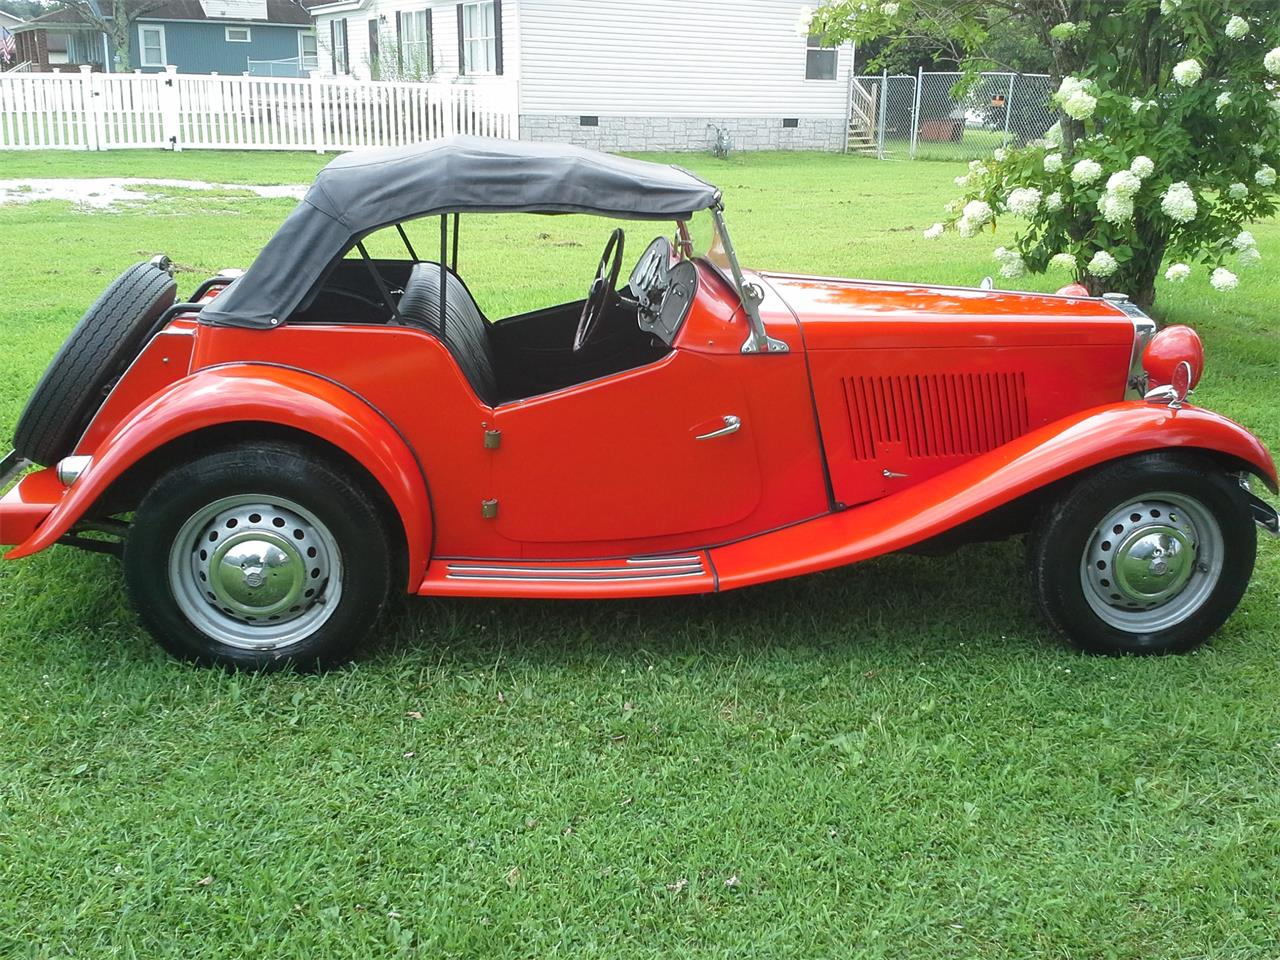 Large Picture of Classic '54 MG TD located in West Virginia - $21,500.00 Offered by a Private Seller - J4BM